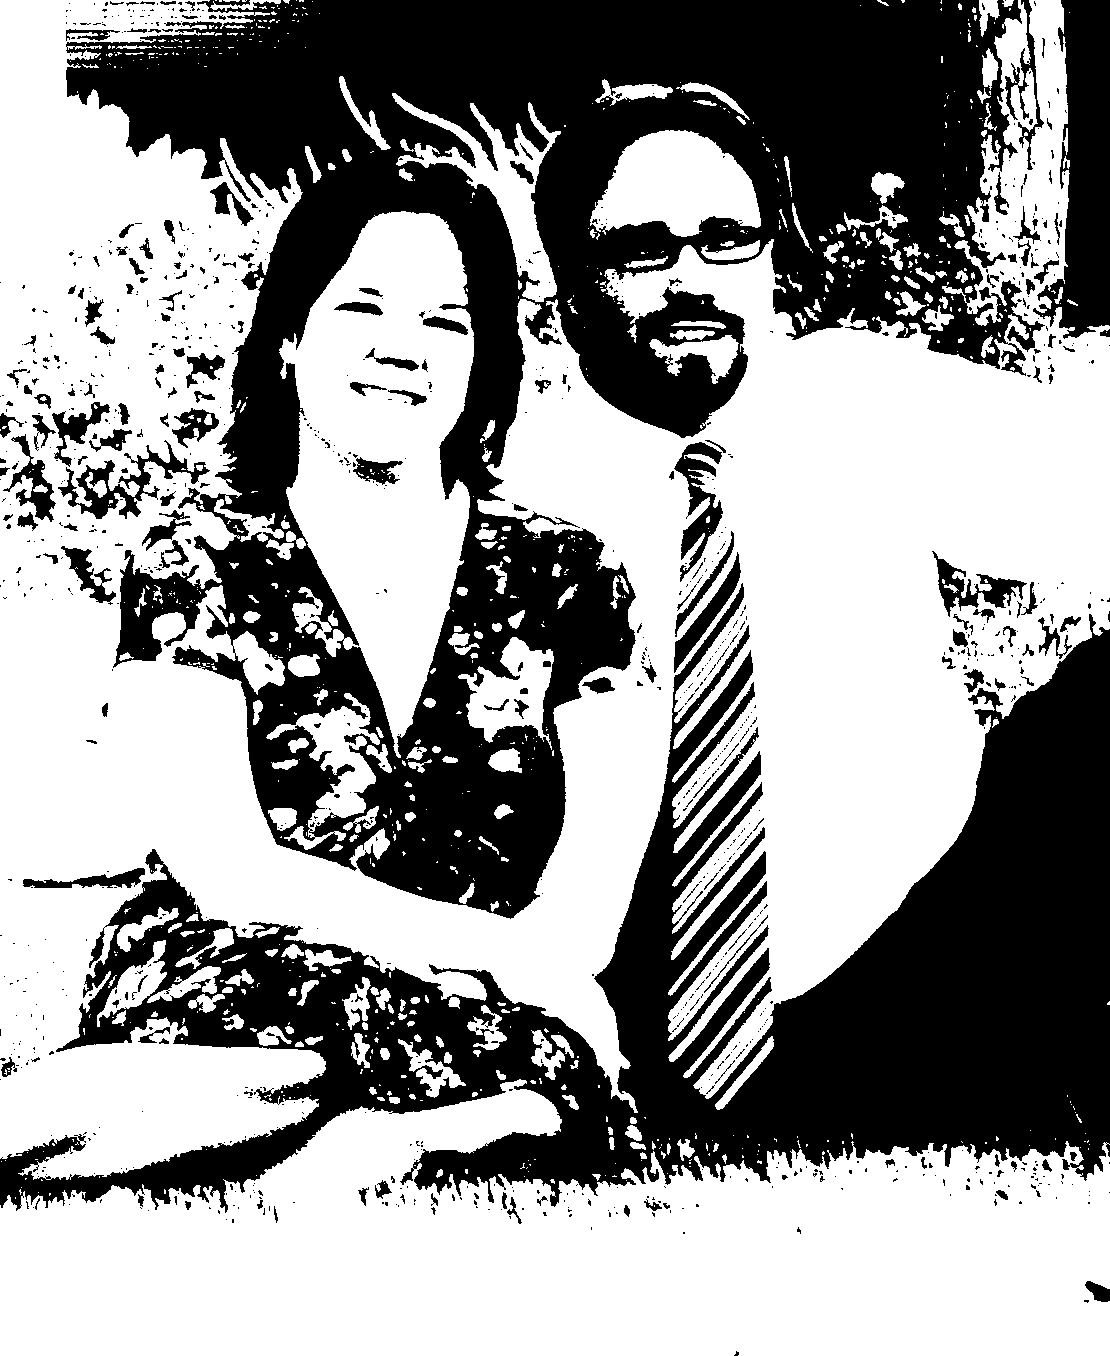 Engagement Photos (adjustments) - 200905230152gscropadj.jpg